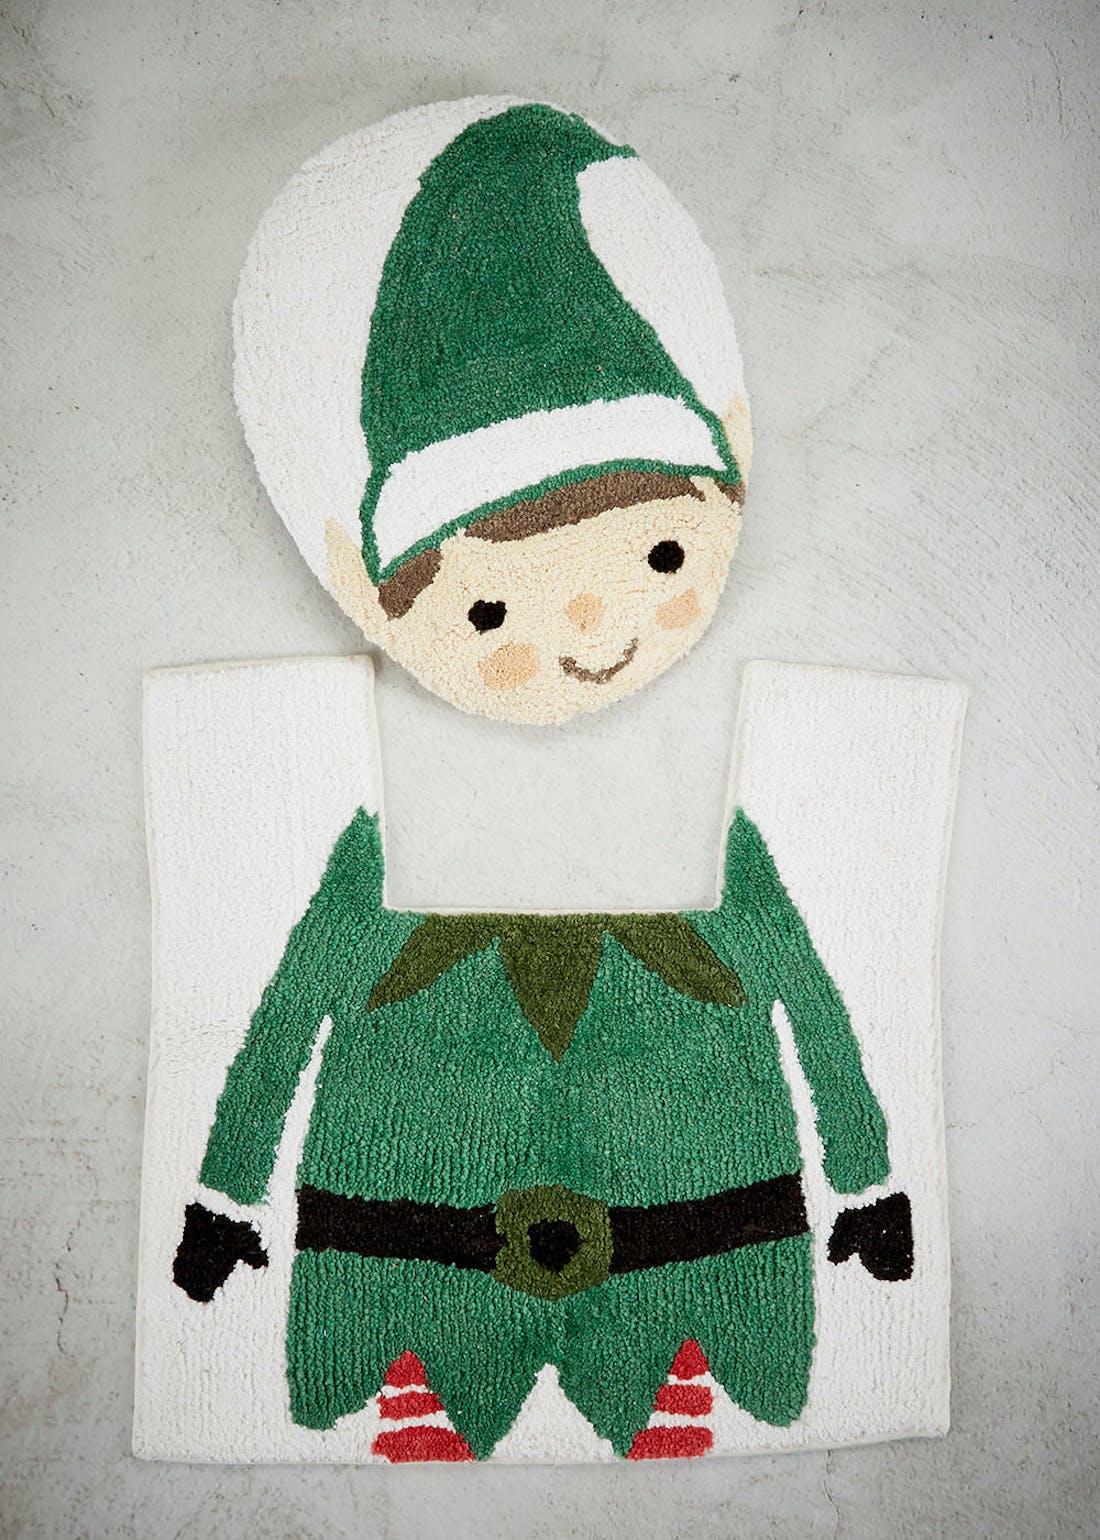 Elf Toilet Seat Cover & Pedestal Mat Set